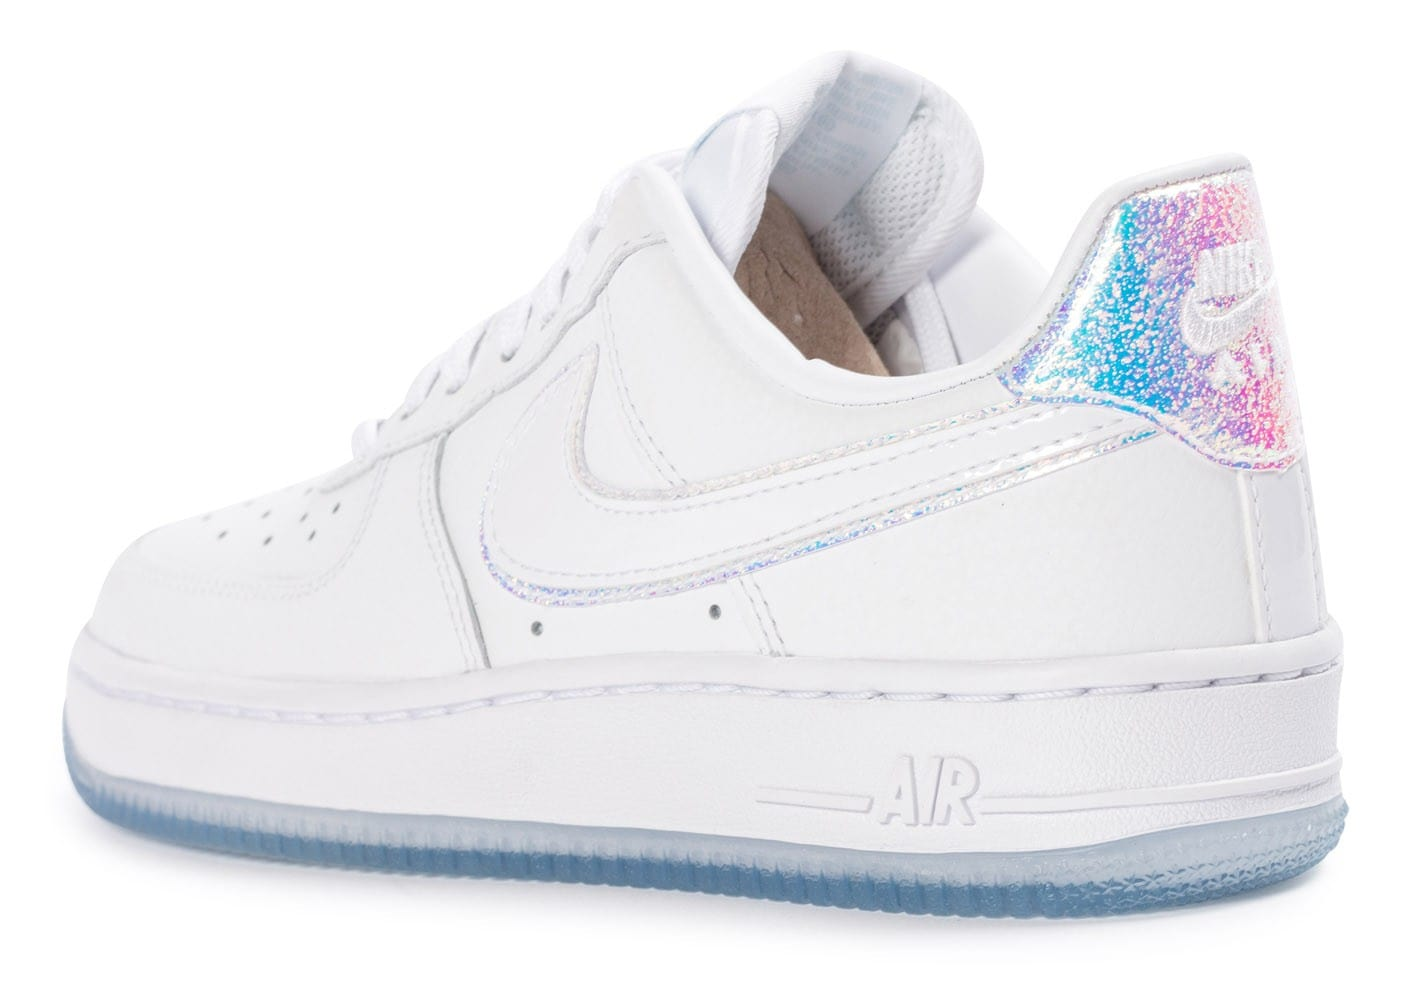 nike air force 1 07 prm iridescente chaussures toutes. Black Bedroom Furniture Sets. Home Design Ideas